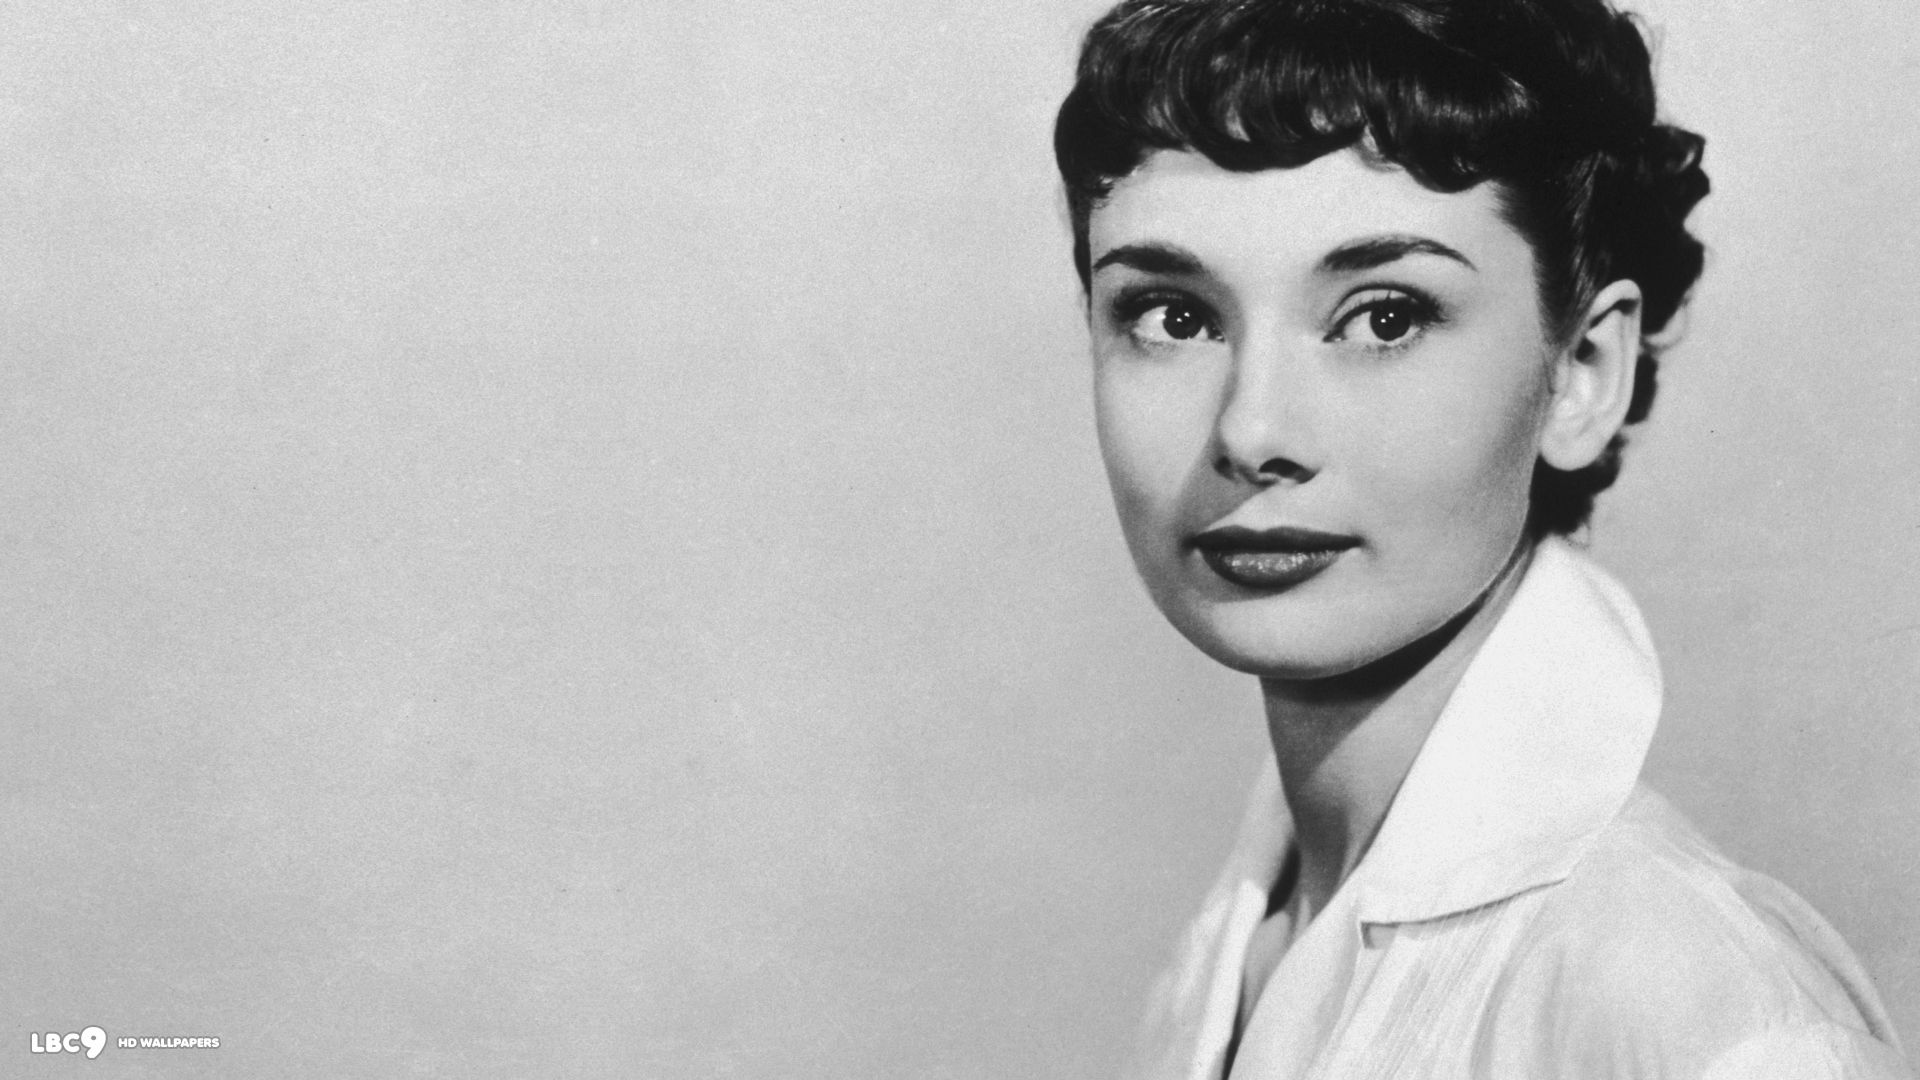 audrey hepburn wallpaper 350 actresses hd backgrounds 1920x1080